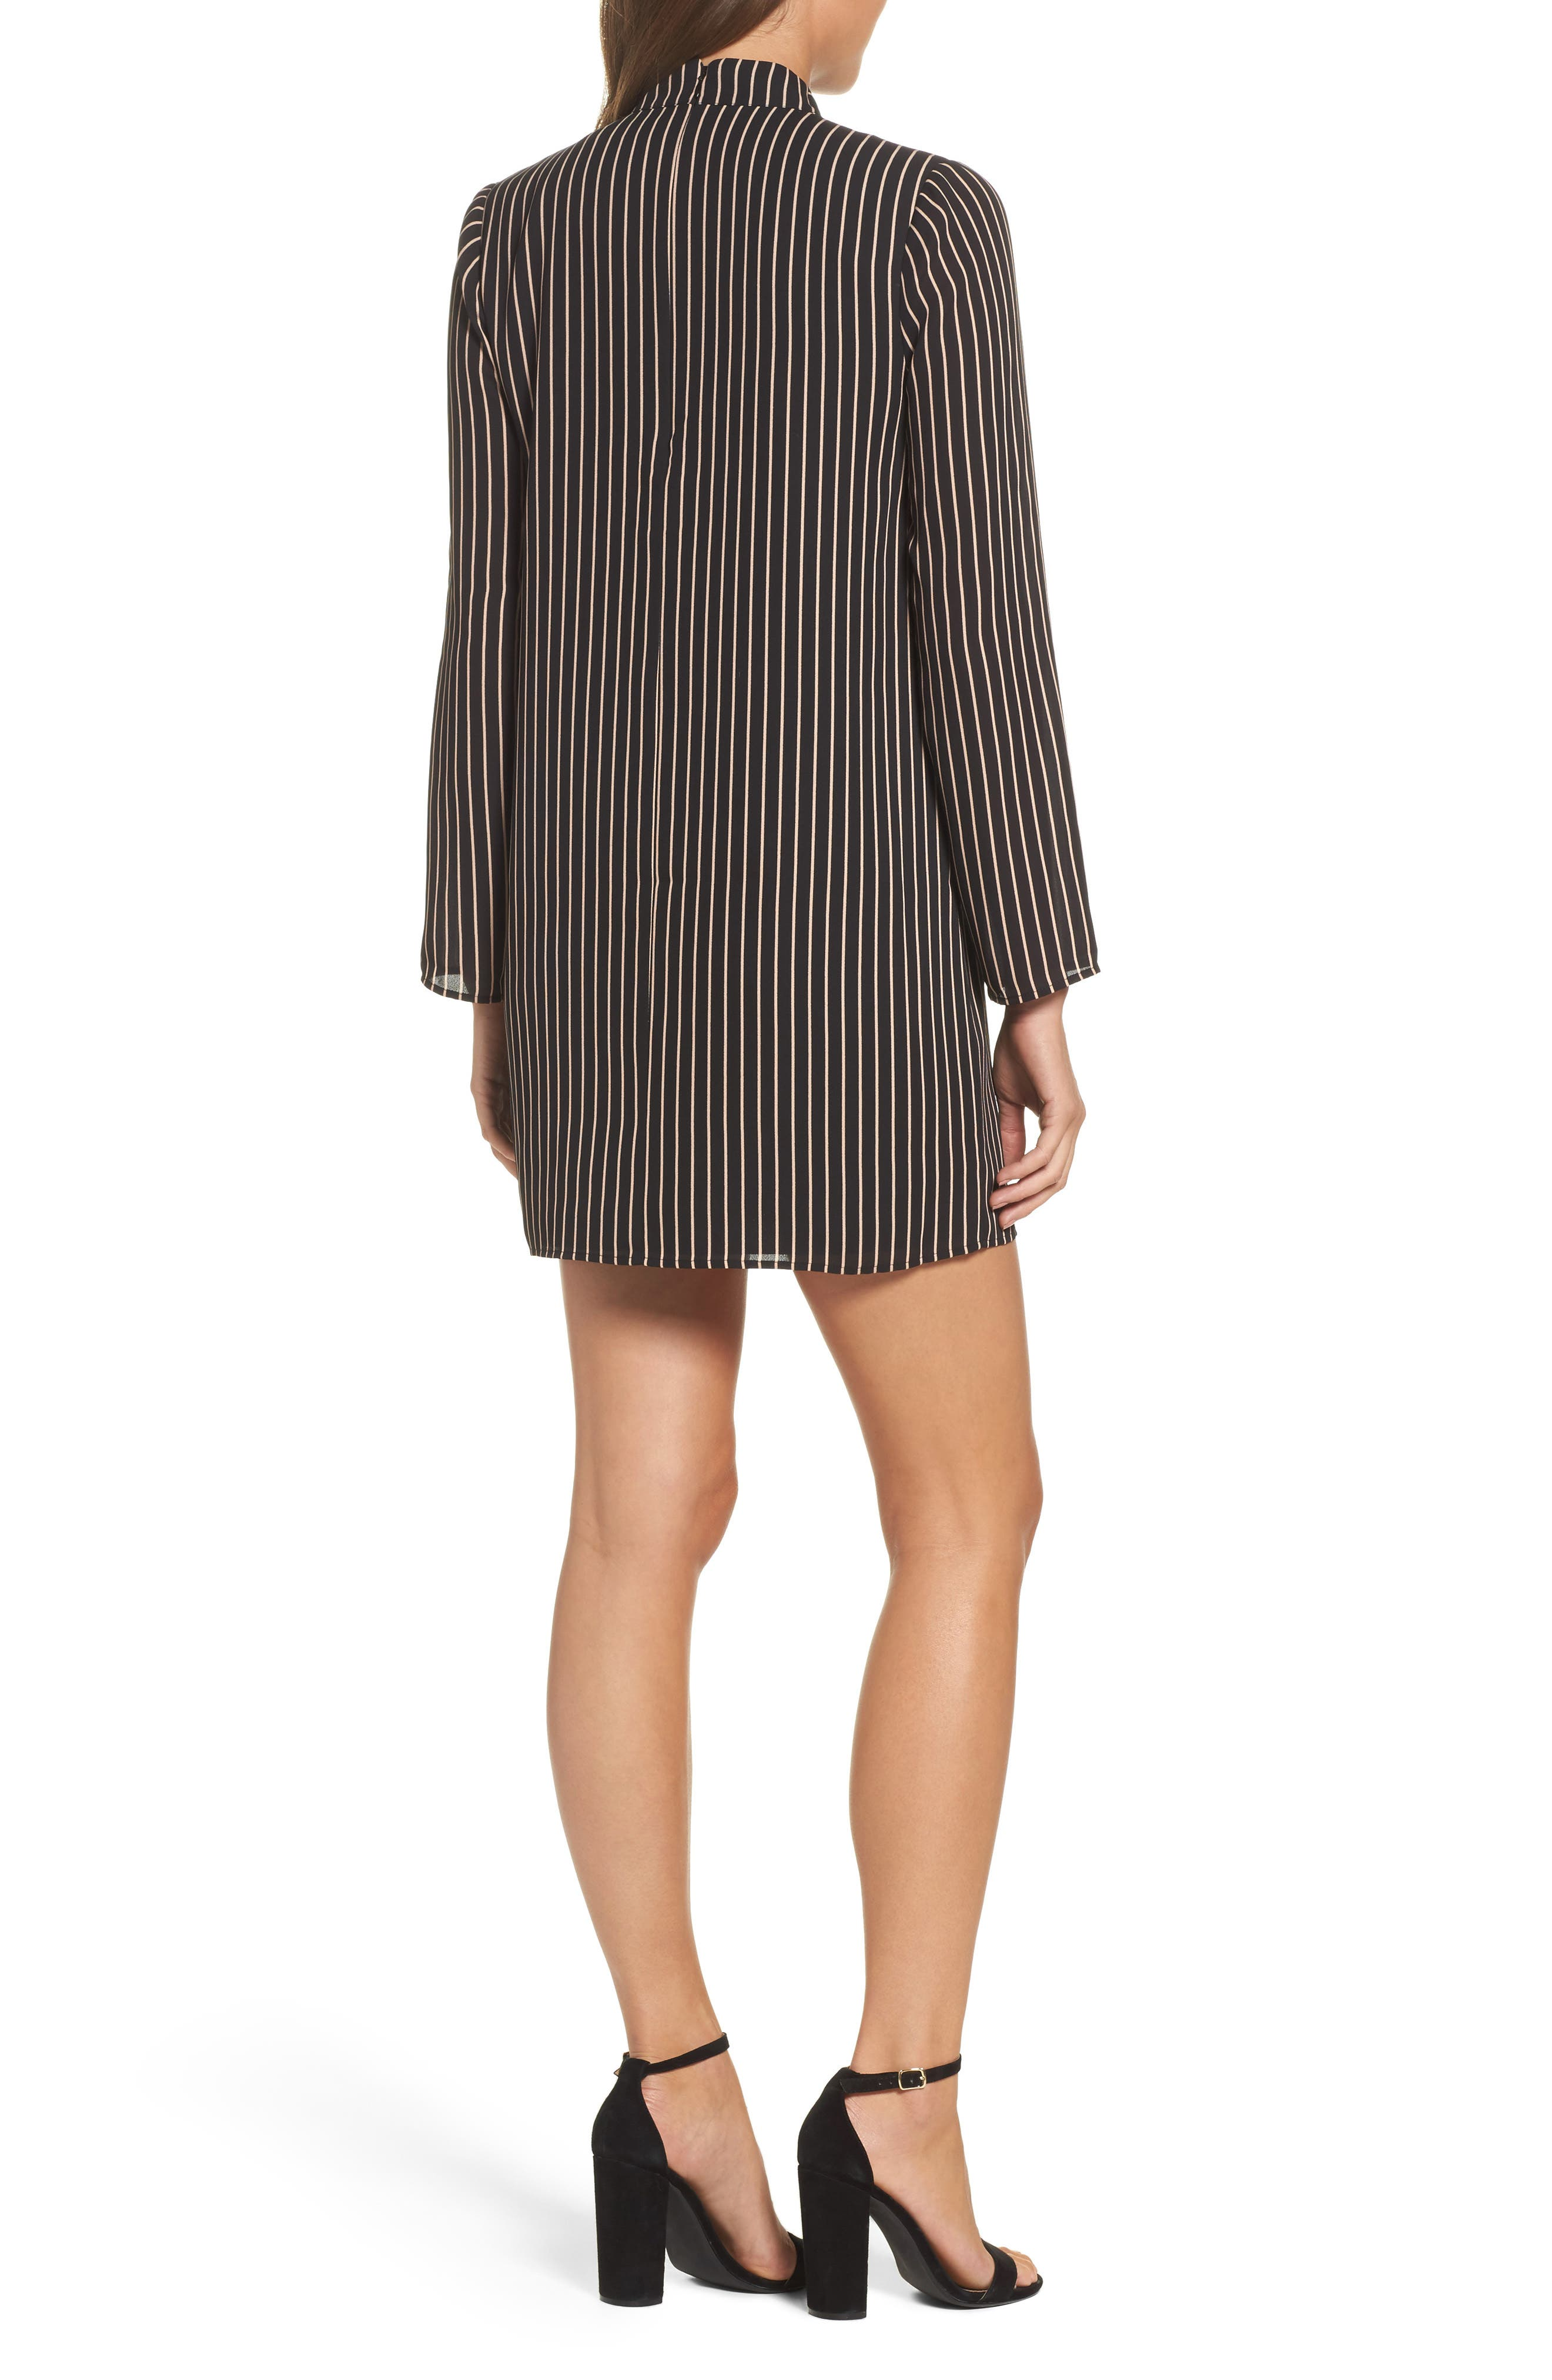 She-E-O Shift Dress,                             Alternate thumbnail 2, color,                             Black/ Tan Stripe